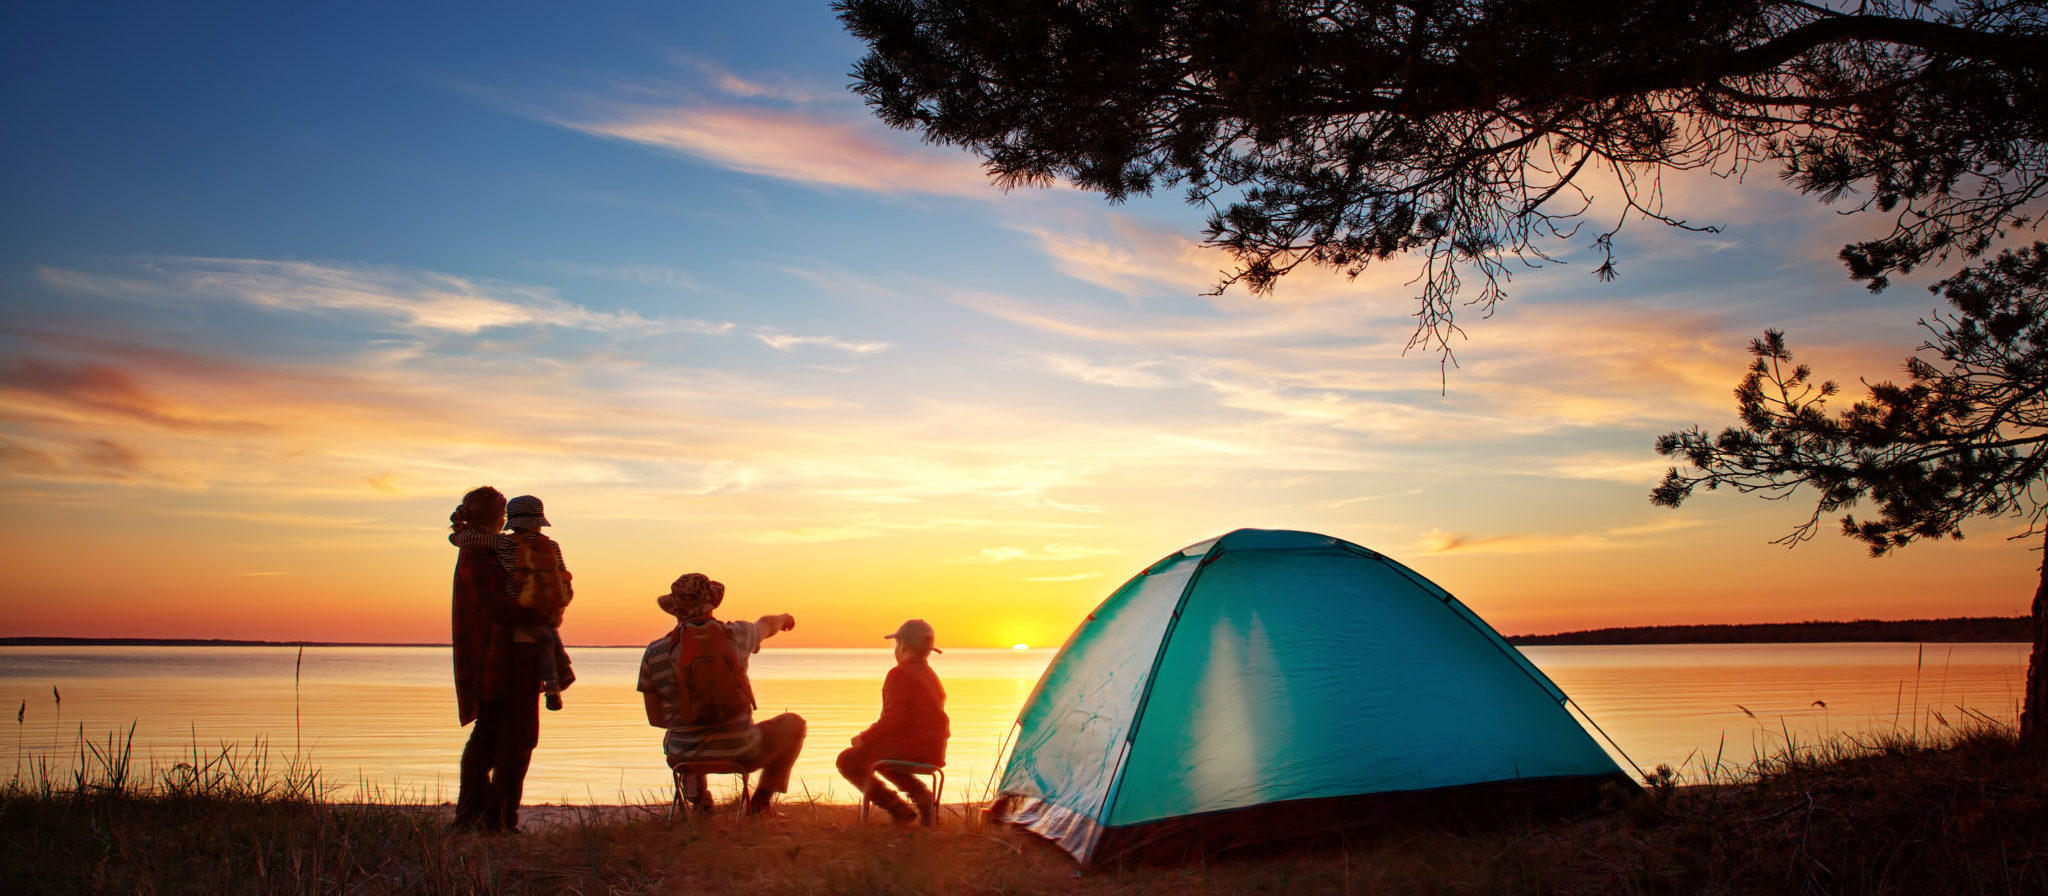 Camping trips are a classic time-honored tradition around the country, and according to many, one of the best ways to experience genuine bonding in the digital age.